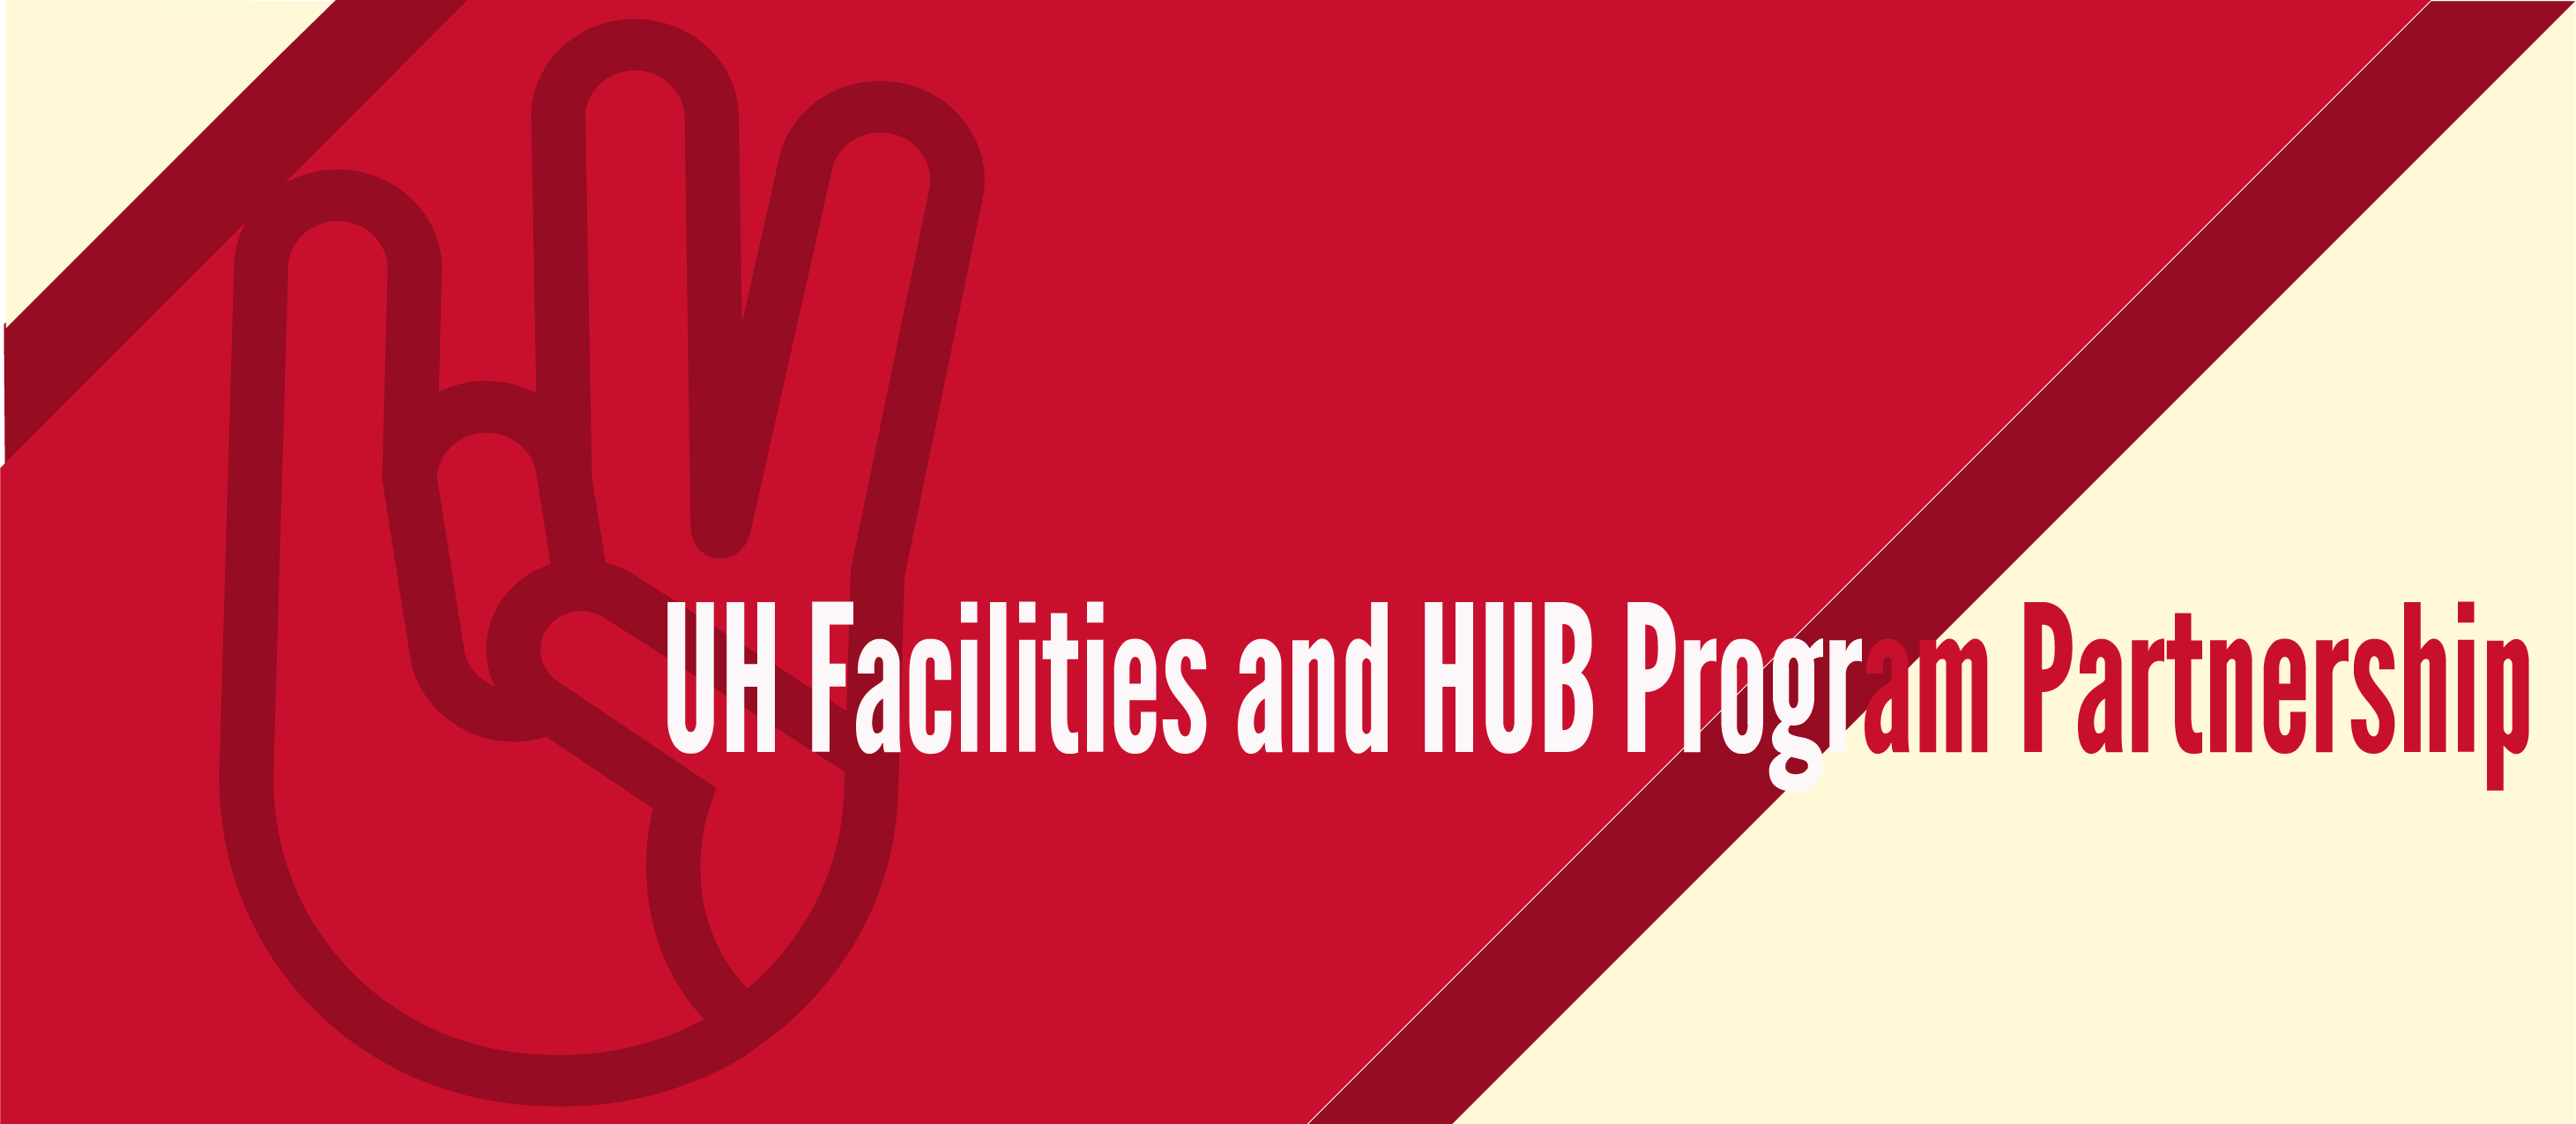 UH Facilities and HUB Program Partnership